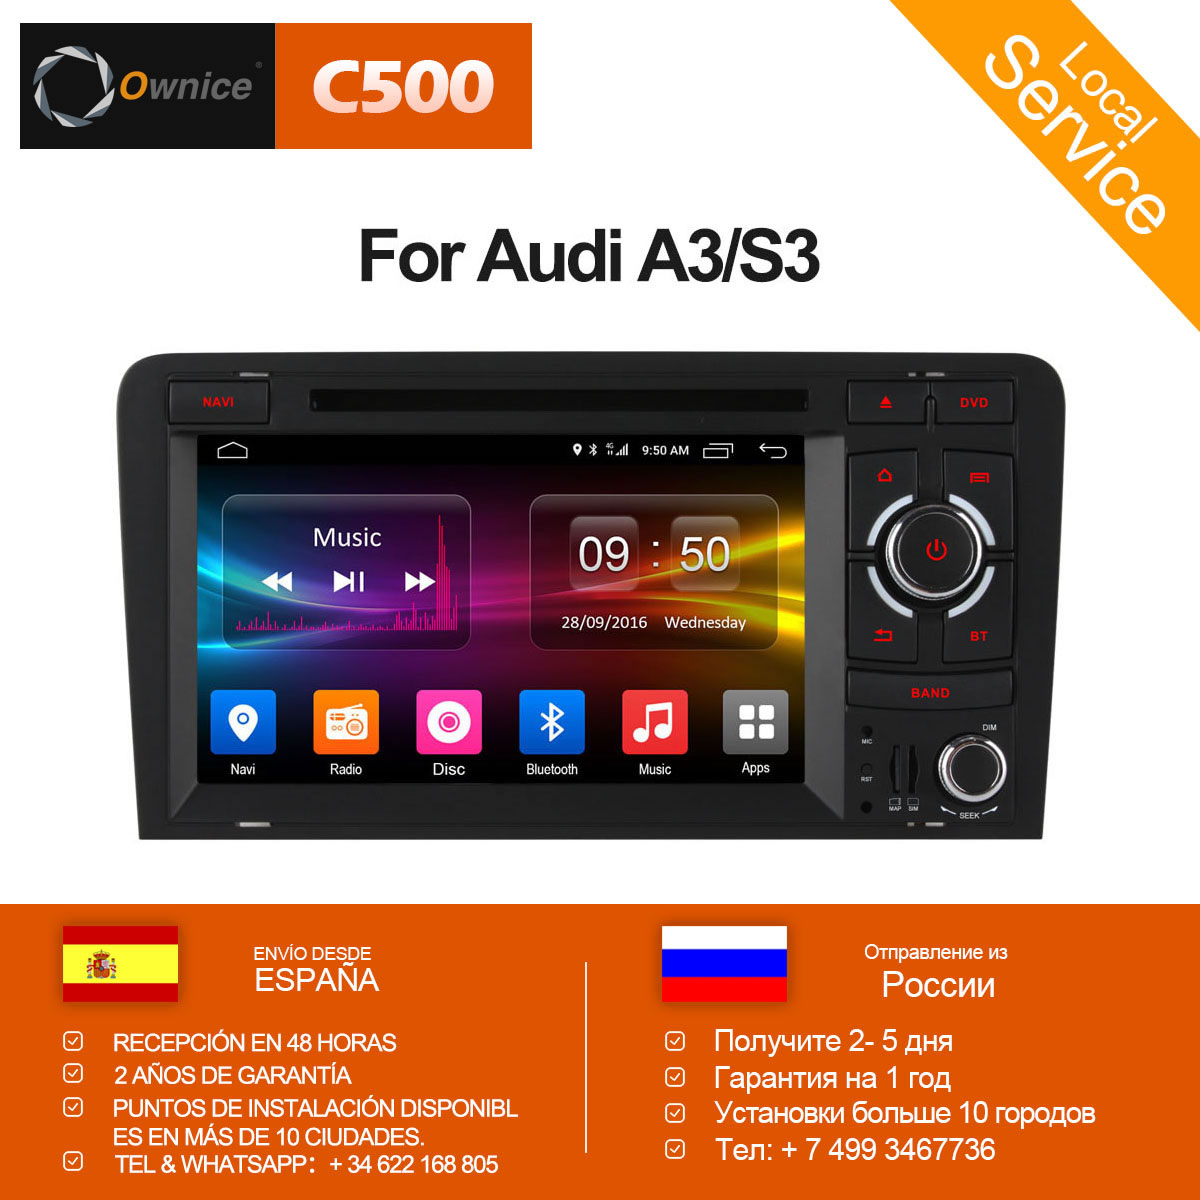 Ownice C500 Octa Core 4G SIM LTE Android 6.0 2 Din 7 Car DVD Player For Audi A3 S3 2004-2011 Radio GPS Navi BT 2GB RAM 32GB ROM 4g sim lte quad core android 6 0 for mazda 3 mazda3 2004 2009 car dvd player non dvd gps navi radio wifi 4g bt 2gb ram 16g rom